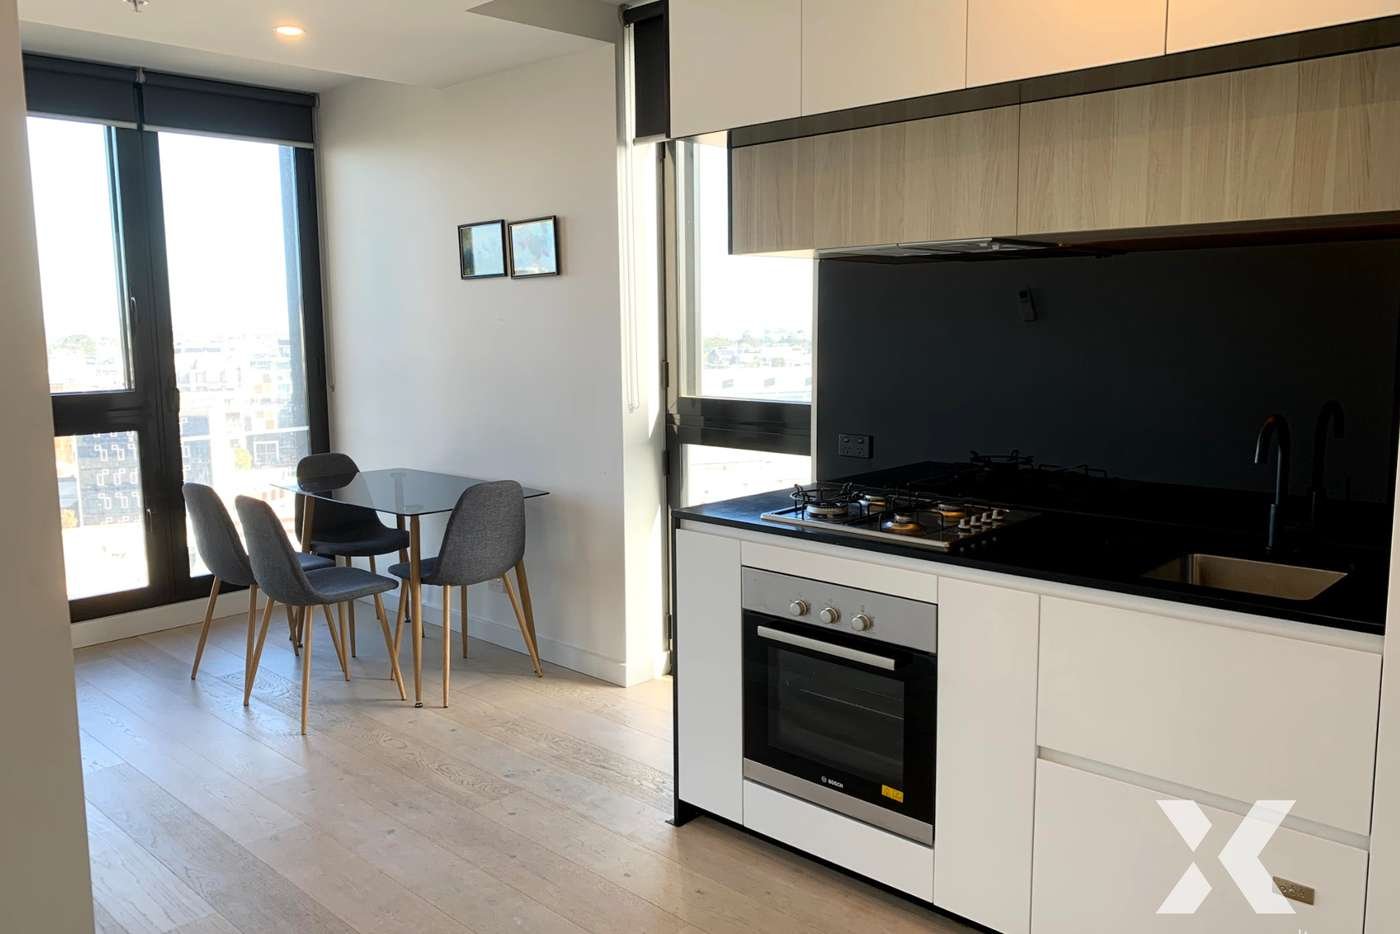 Main view of Homely apartment listing, 1304/63 Haig Street, Southbank VIC 3006